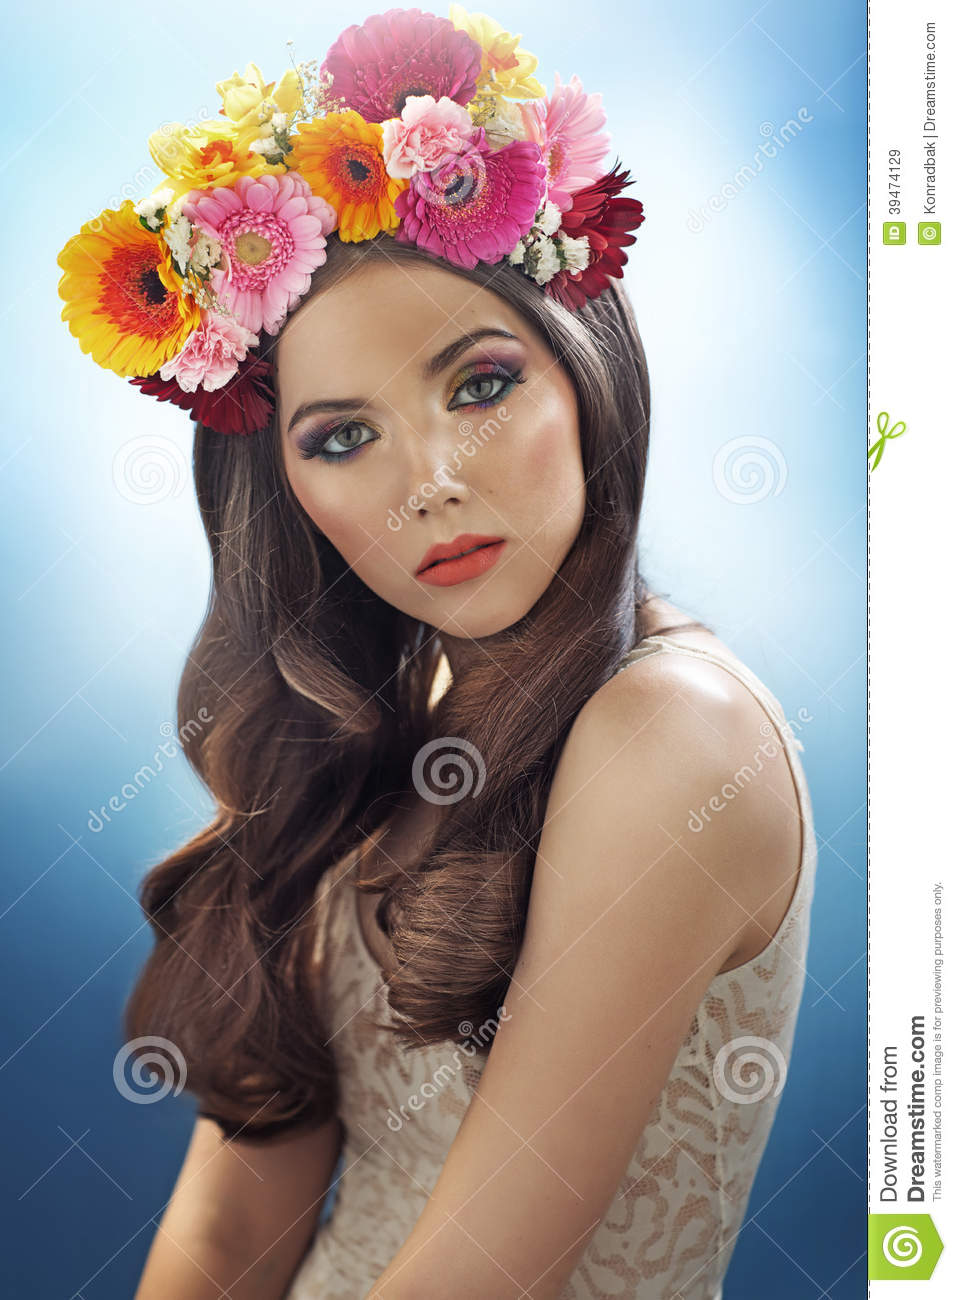 Young Pretty Girl With The Flower Hat Stock Image - Image of ... e2a9563b1b8